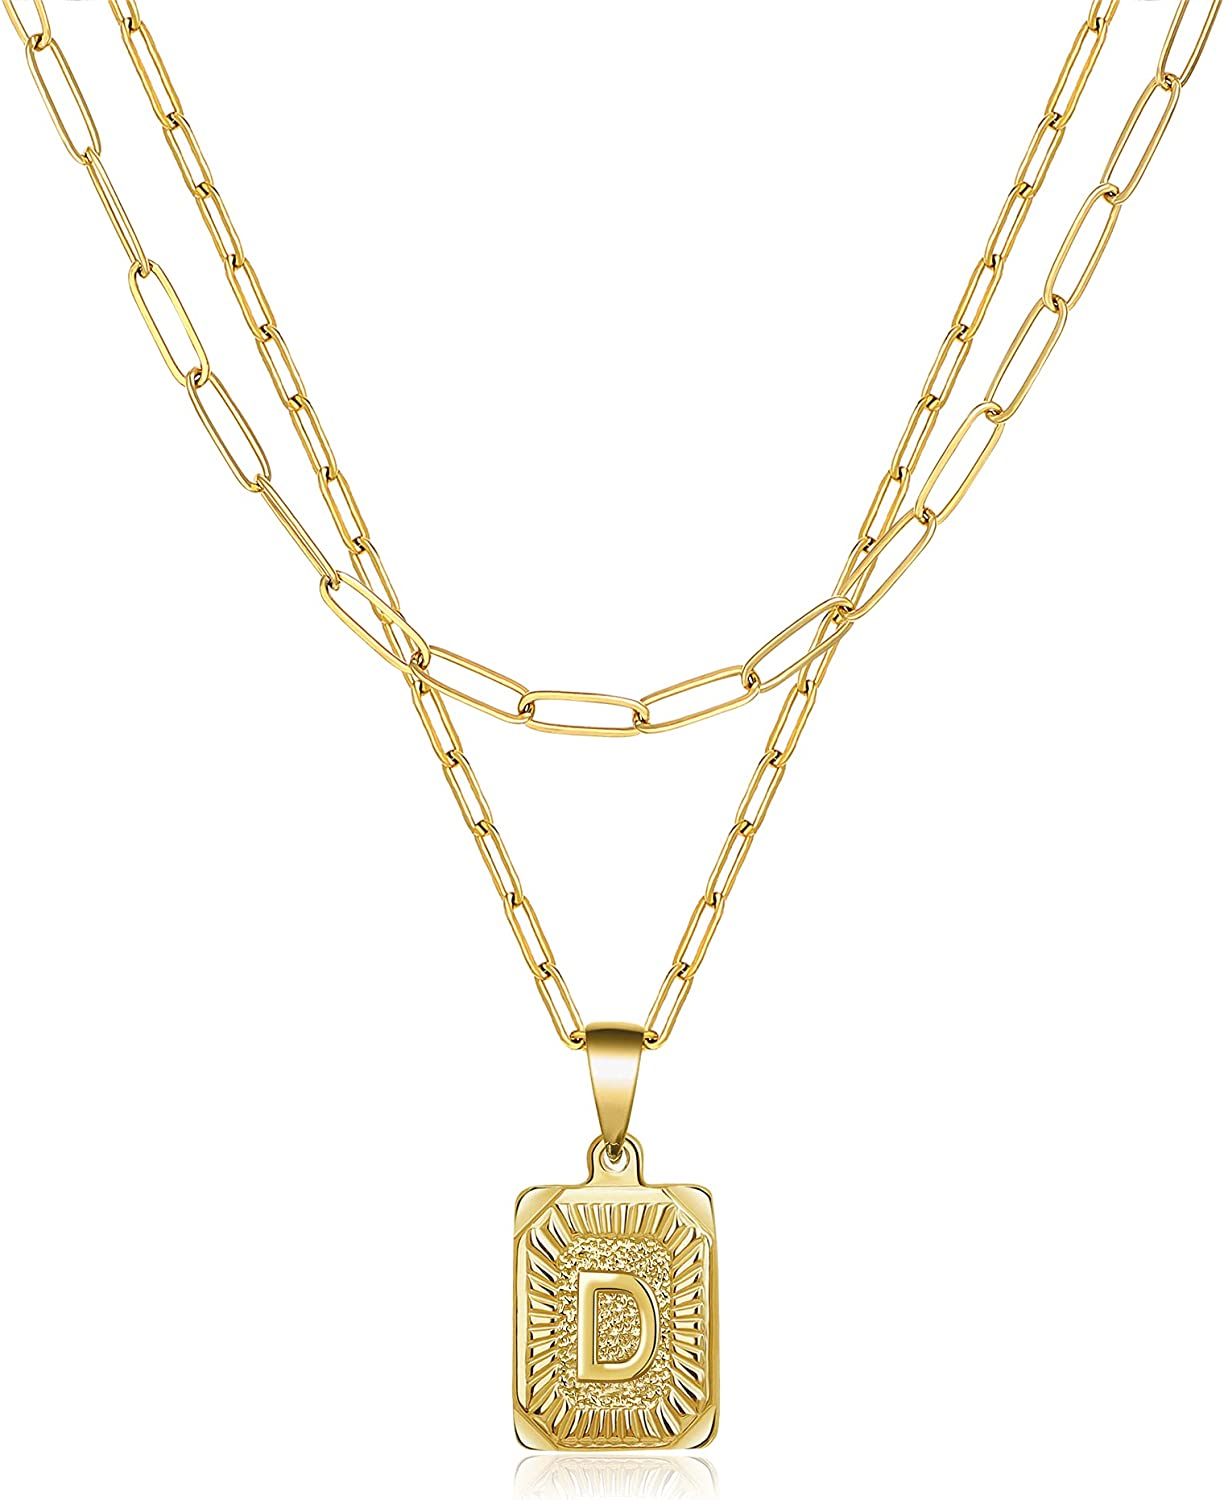 Layered Choker Necklaces for Women Girls Dainty Trendy Layering Paperclip Gold Planted Stainless Steel Chain Pendant Necklace Jewelry Gifts for Mother Daughter Sister Square Letter A-Z